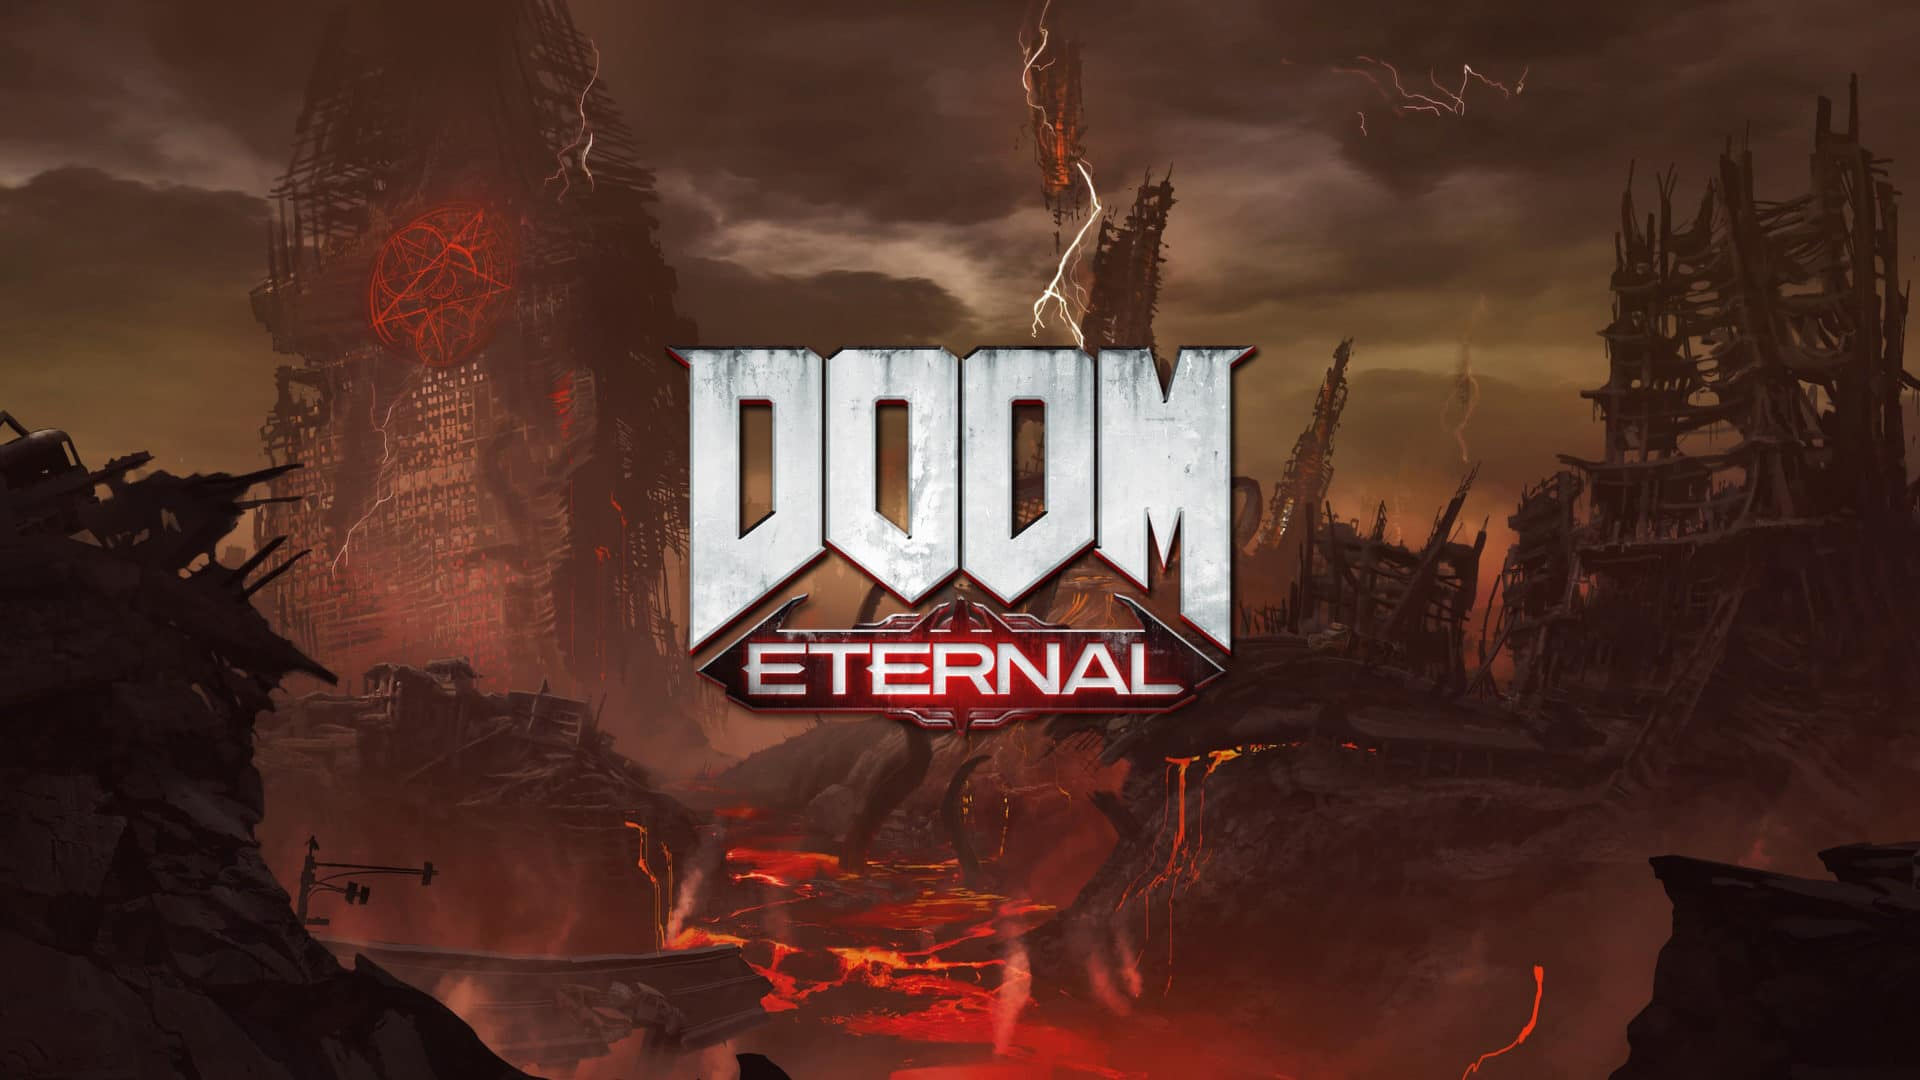 Doom Eternal Showcases Fiery Art Design With New Concept Art